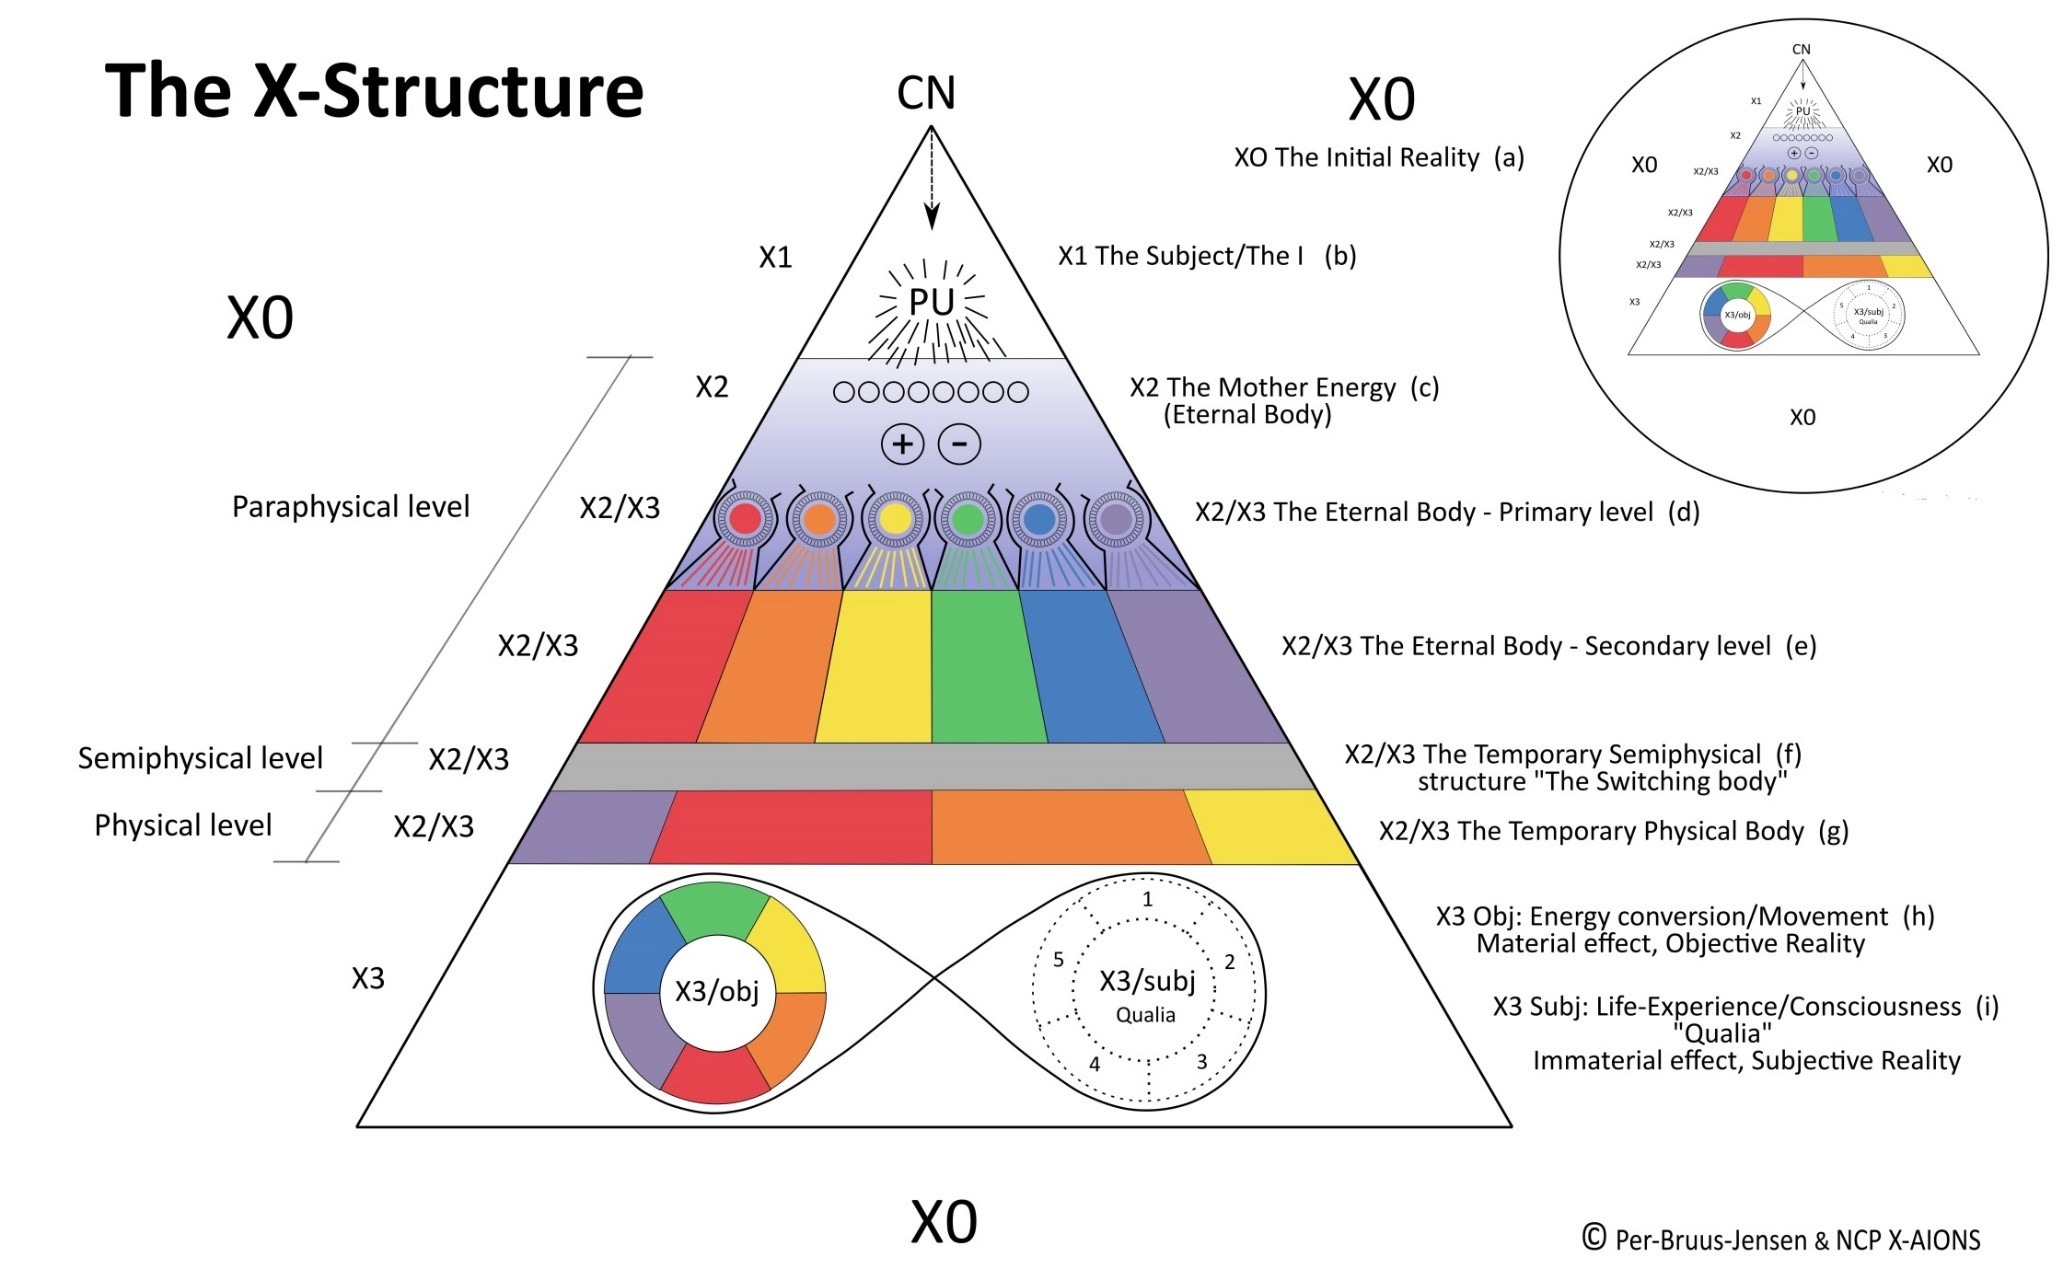 The X-Structure - The Living Being and The Organism (Xom3) NCP X-AIONS